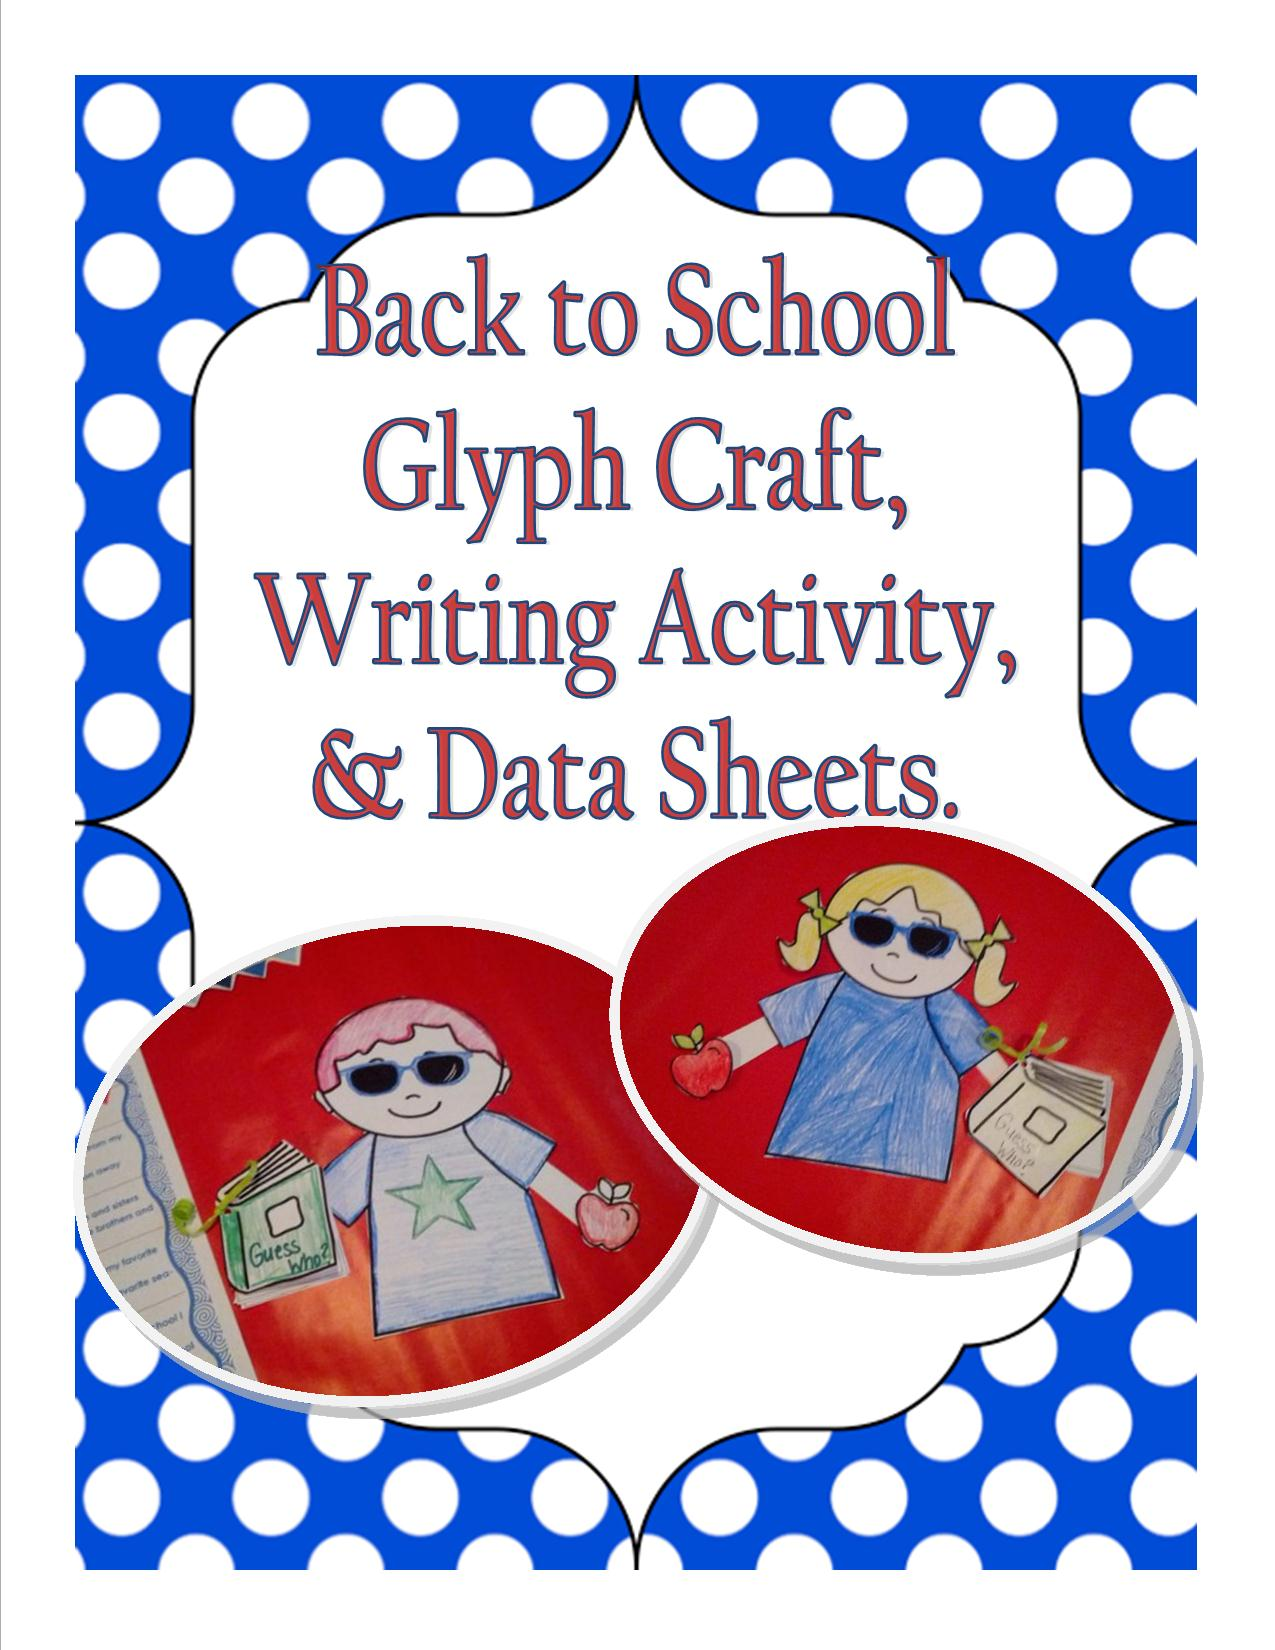 Back to School Glyph Craftivity